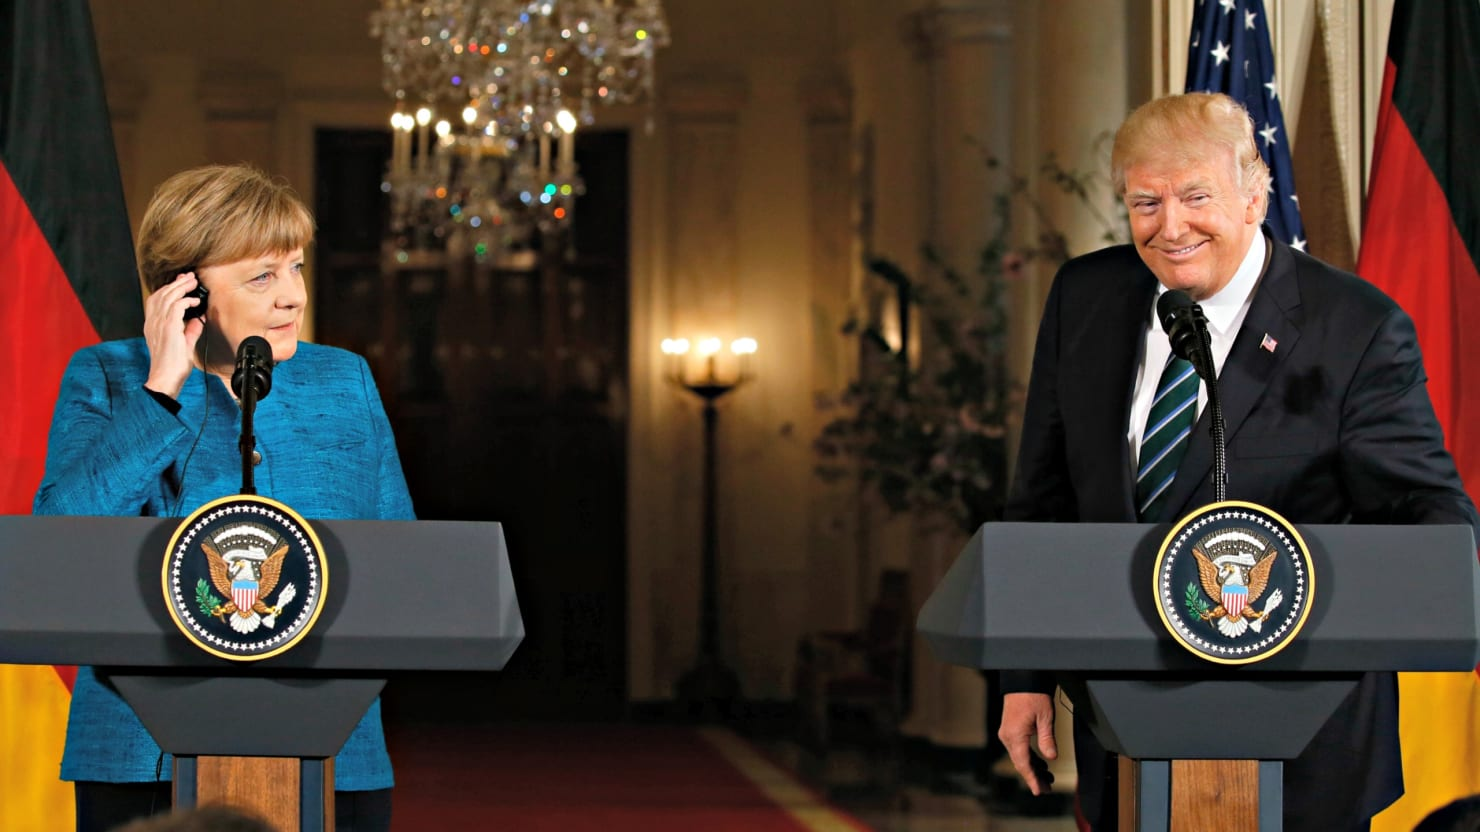 Trump meets the german press and they laugh at him the american president meeting his german counterpart keeps taking victory laps ripping reporters and ignoring the substance of tough questions m4hsunfo